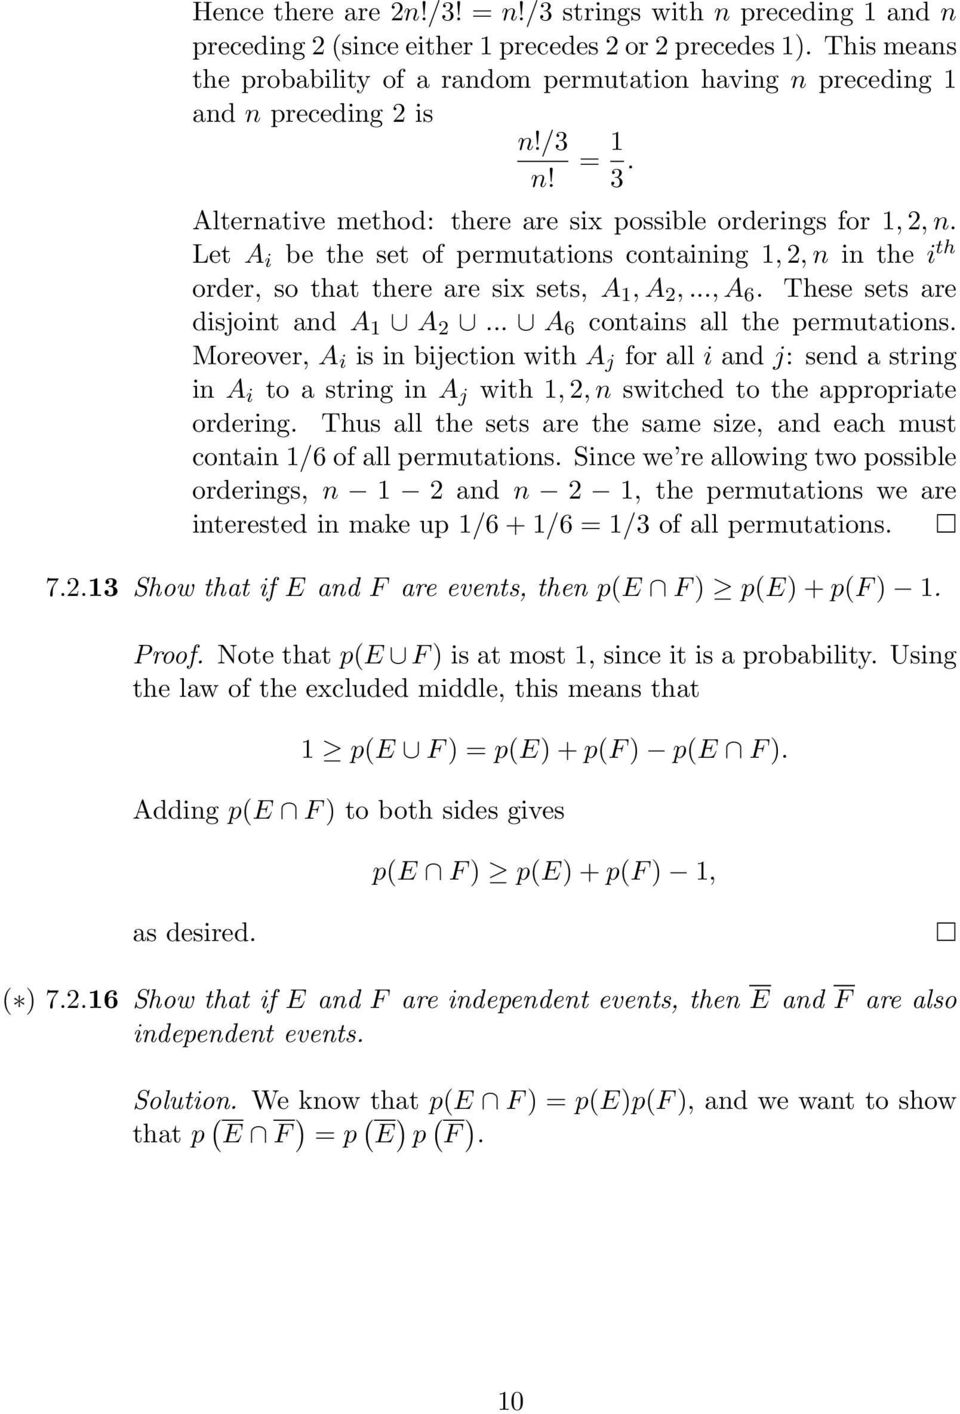 Let A i be the set of permutations containing 1, 2, n in the i th order, so that there are six sets, A 1, A 2,..., A. These sets are disjoint and A 1 A 2... A contains all the permutations.